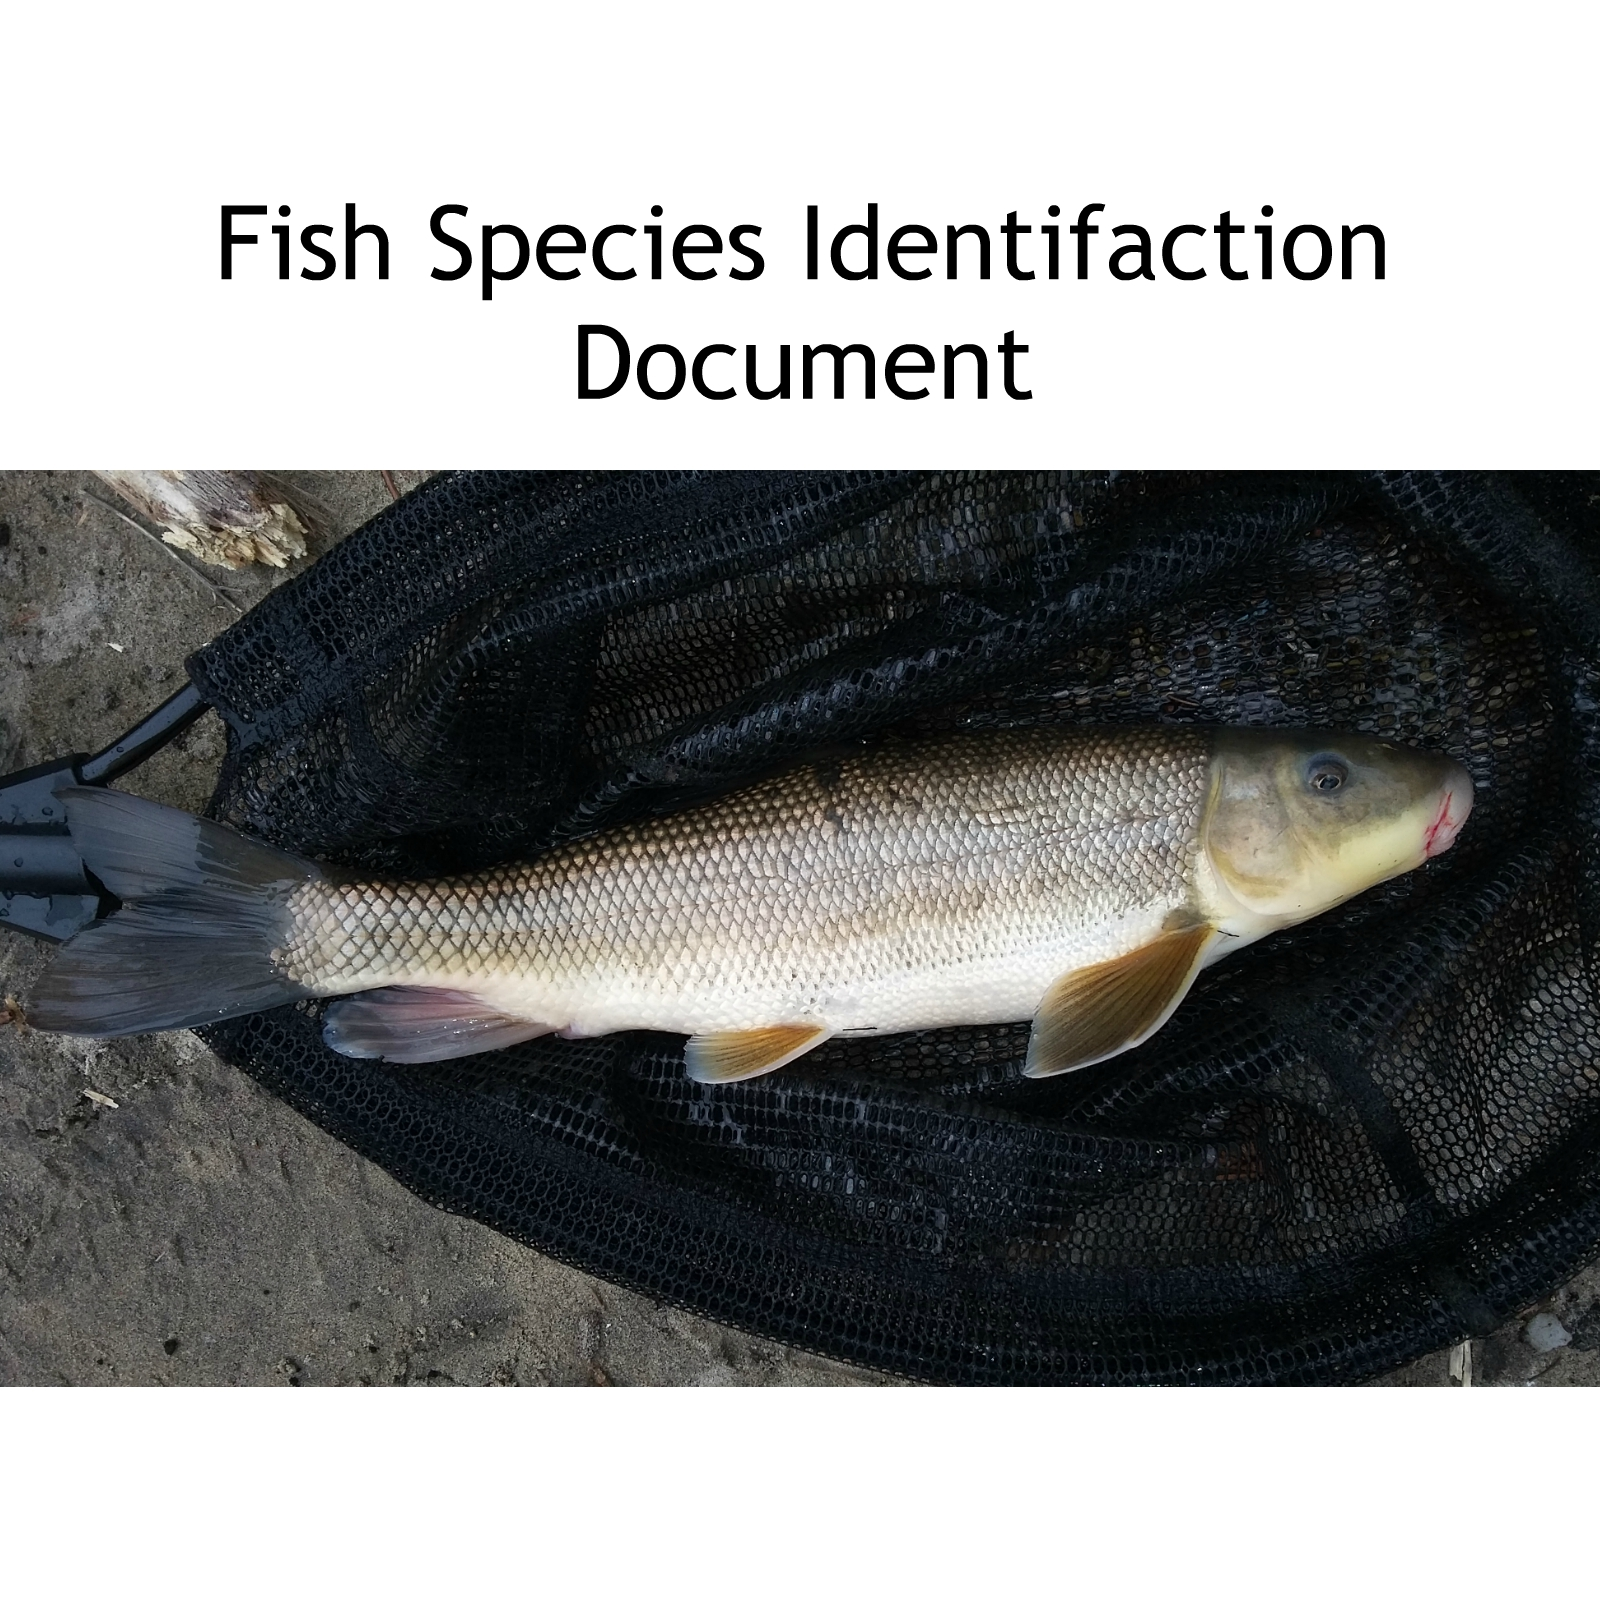 SPECIES IDENTIFICATION DOCUMENT